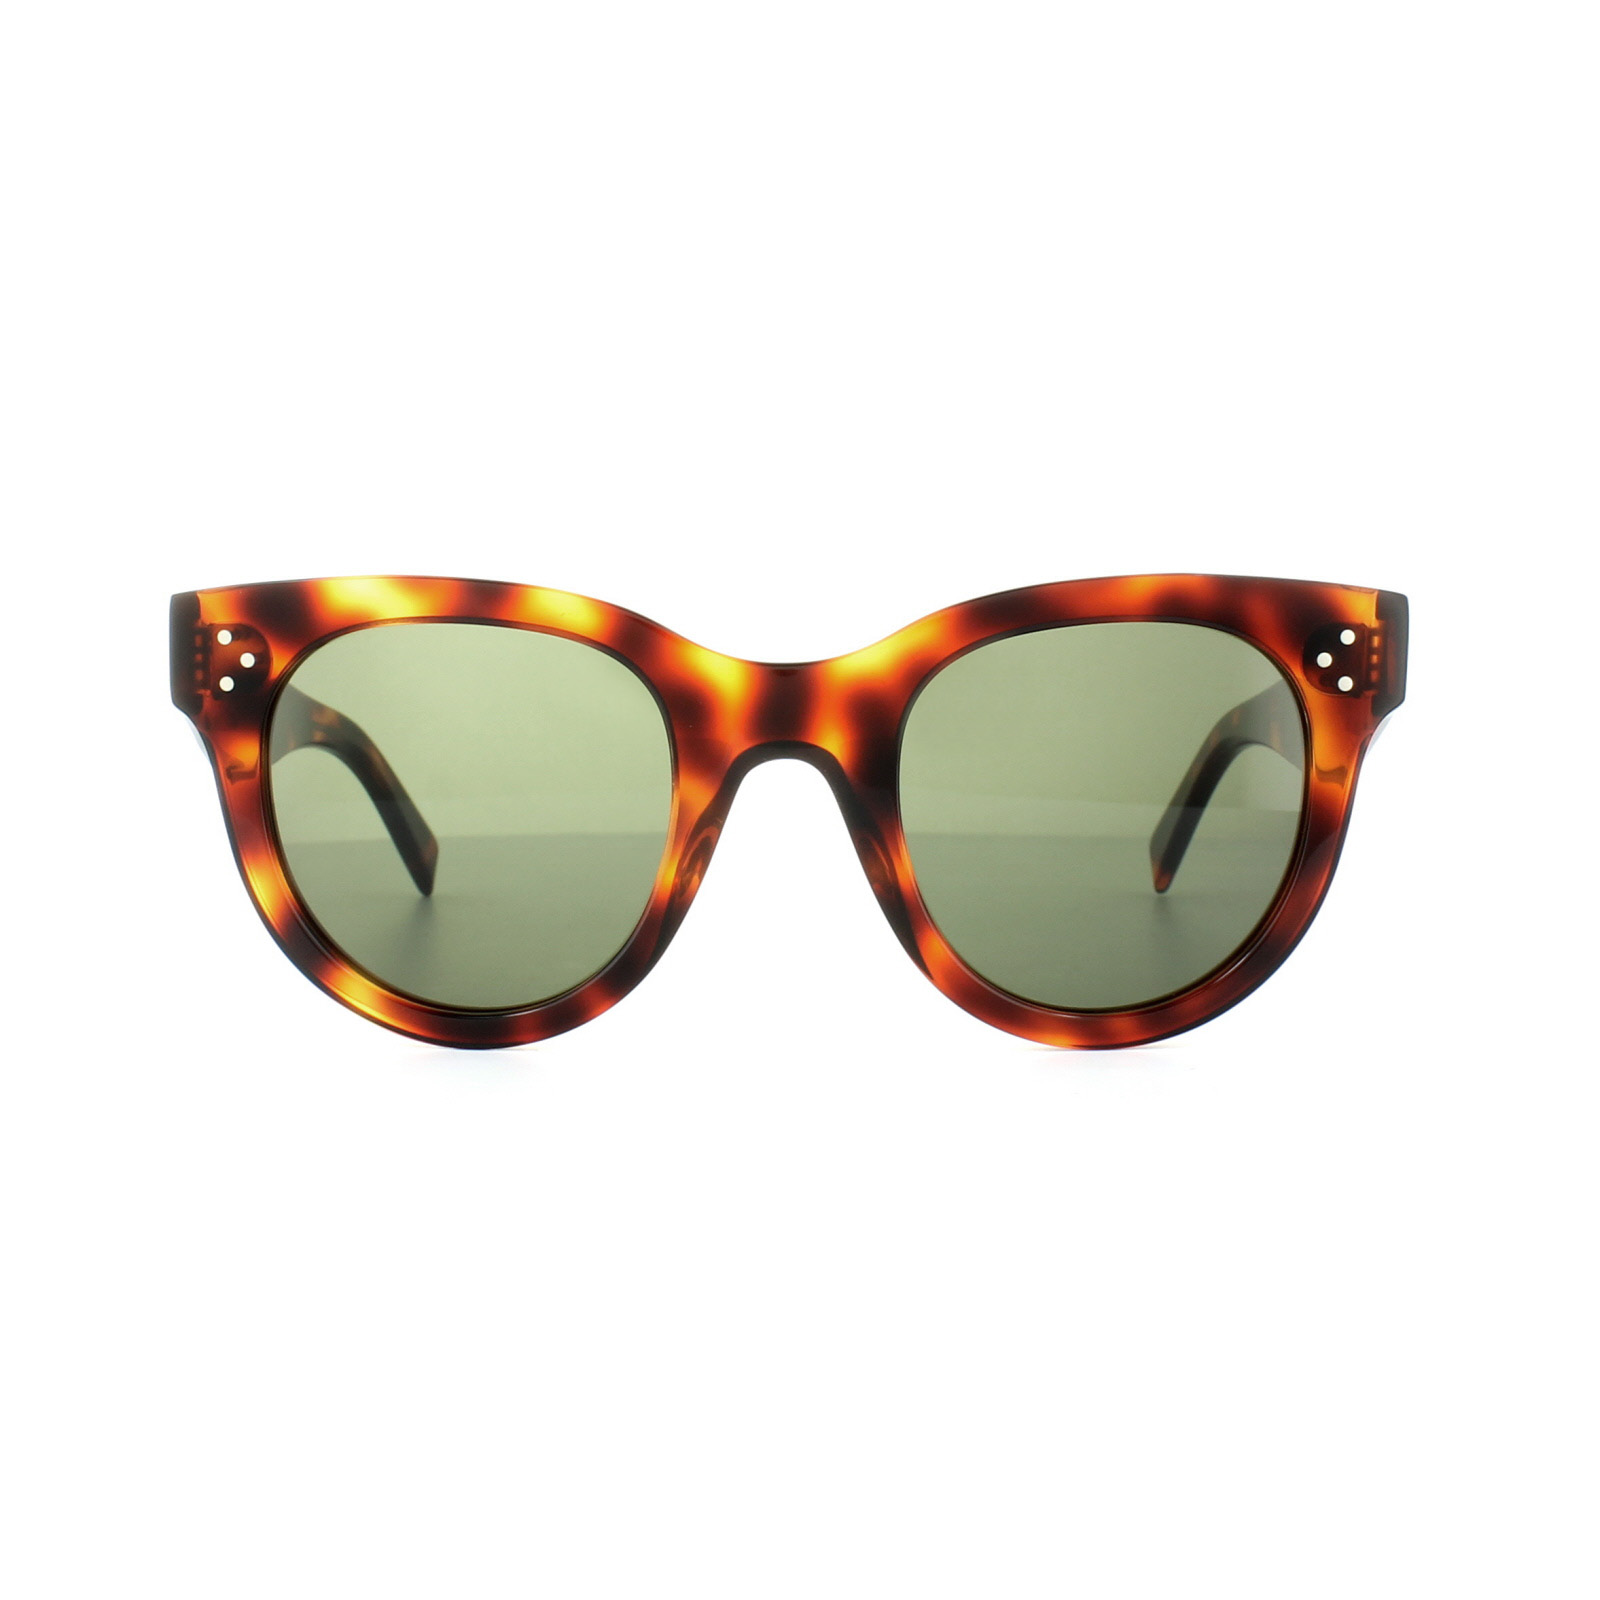 f08cdd36b8 Cheap Celine 41053 S Baby Audrey Sunglasses - Discounted Sunglasses